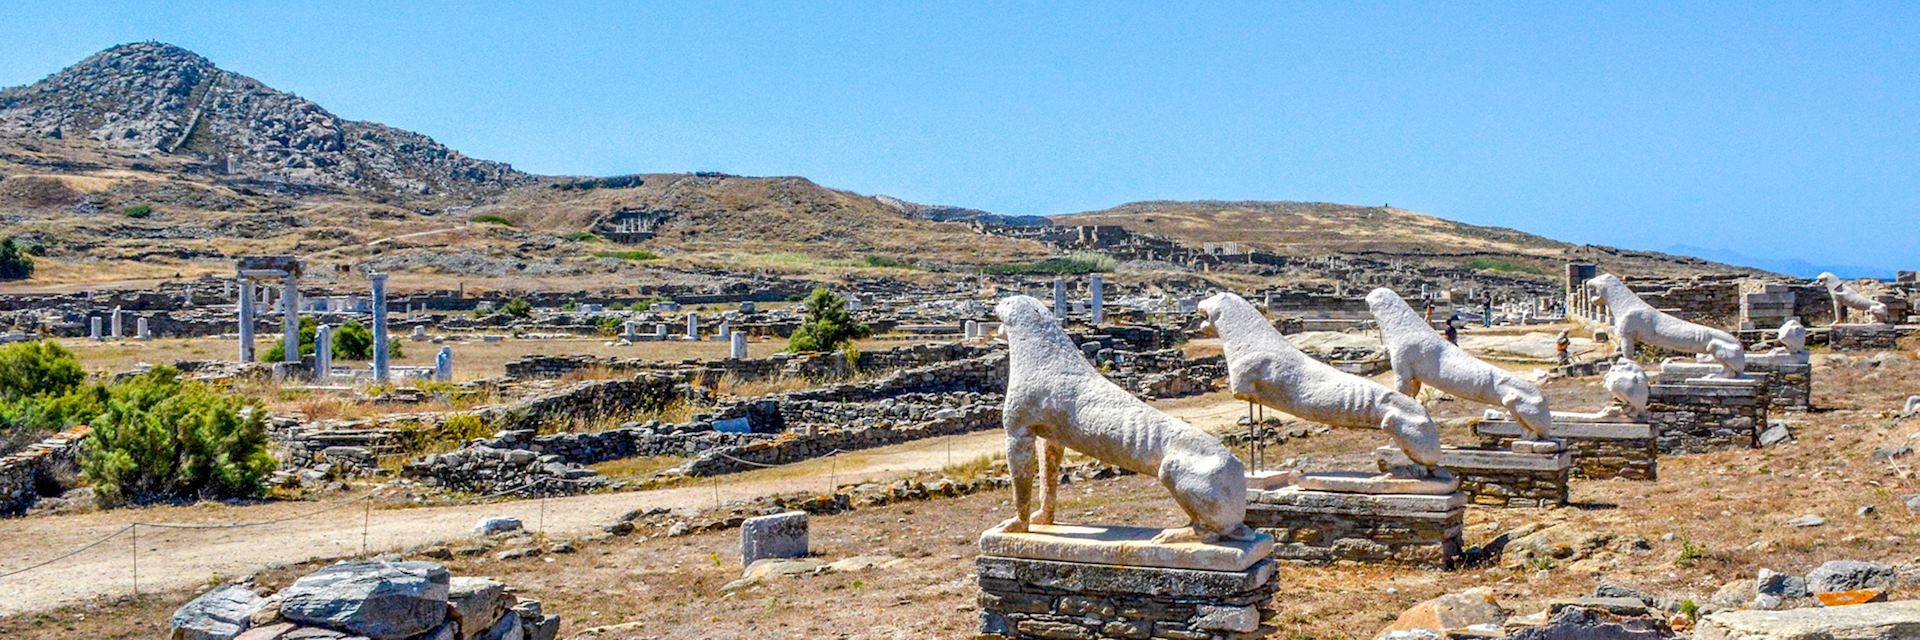 Terrace of the Lions, the famous symbol of Archaeological Site of Delos, Delos Island, Cyclades